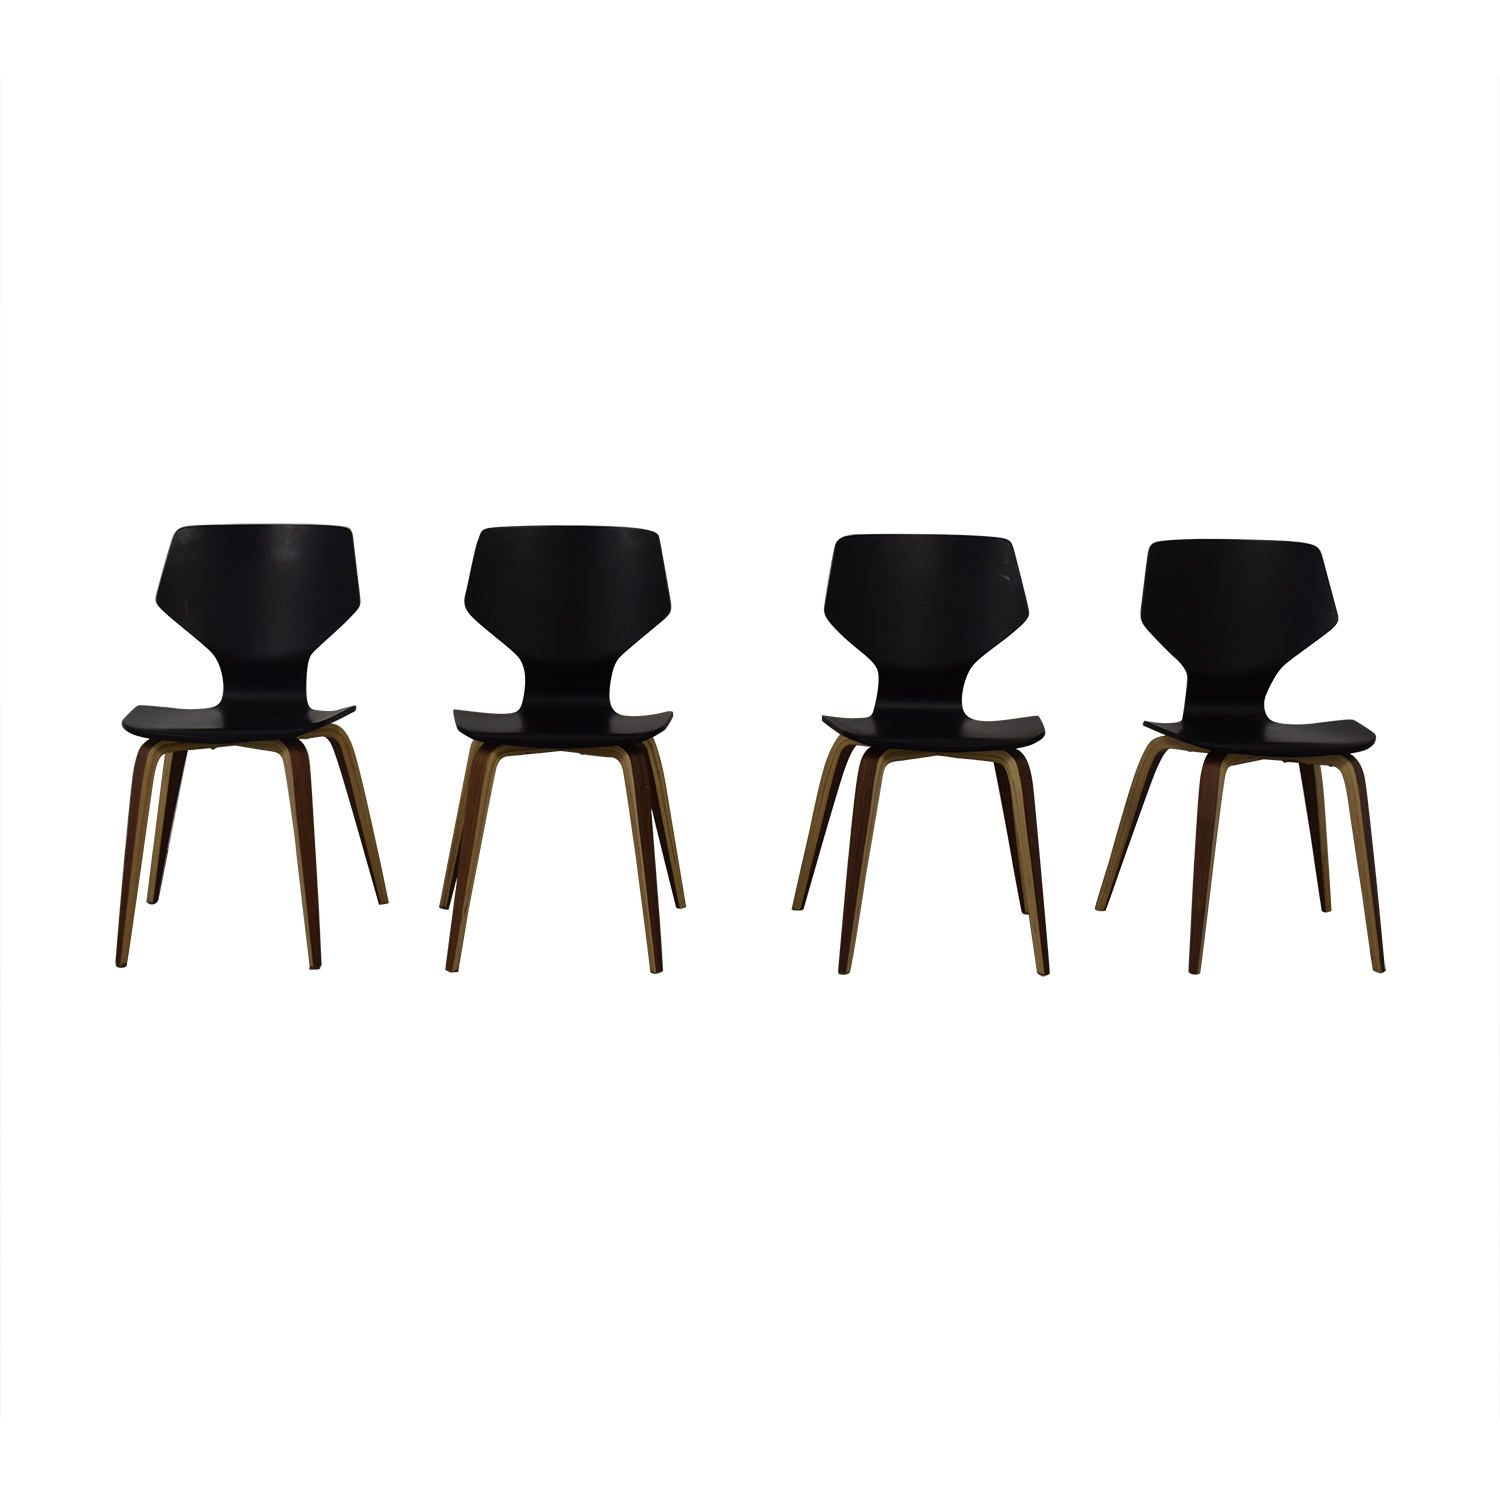 buy Room & Board Room & Board Pike Chairs online